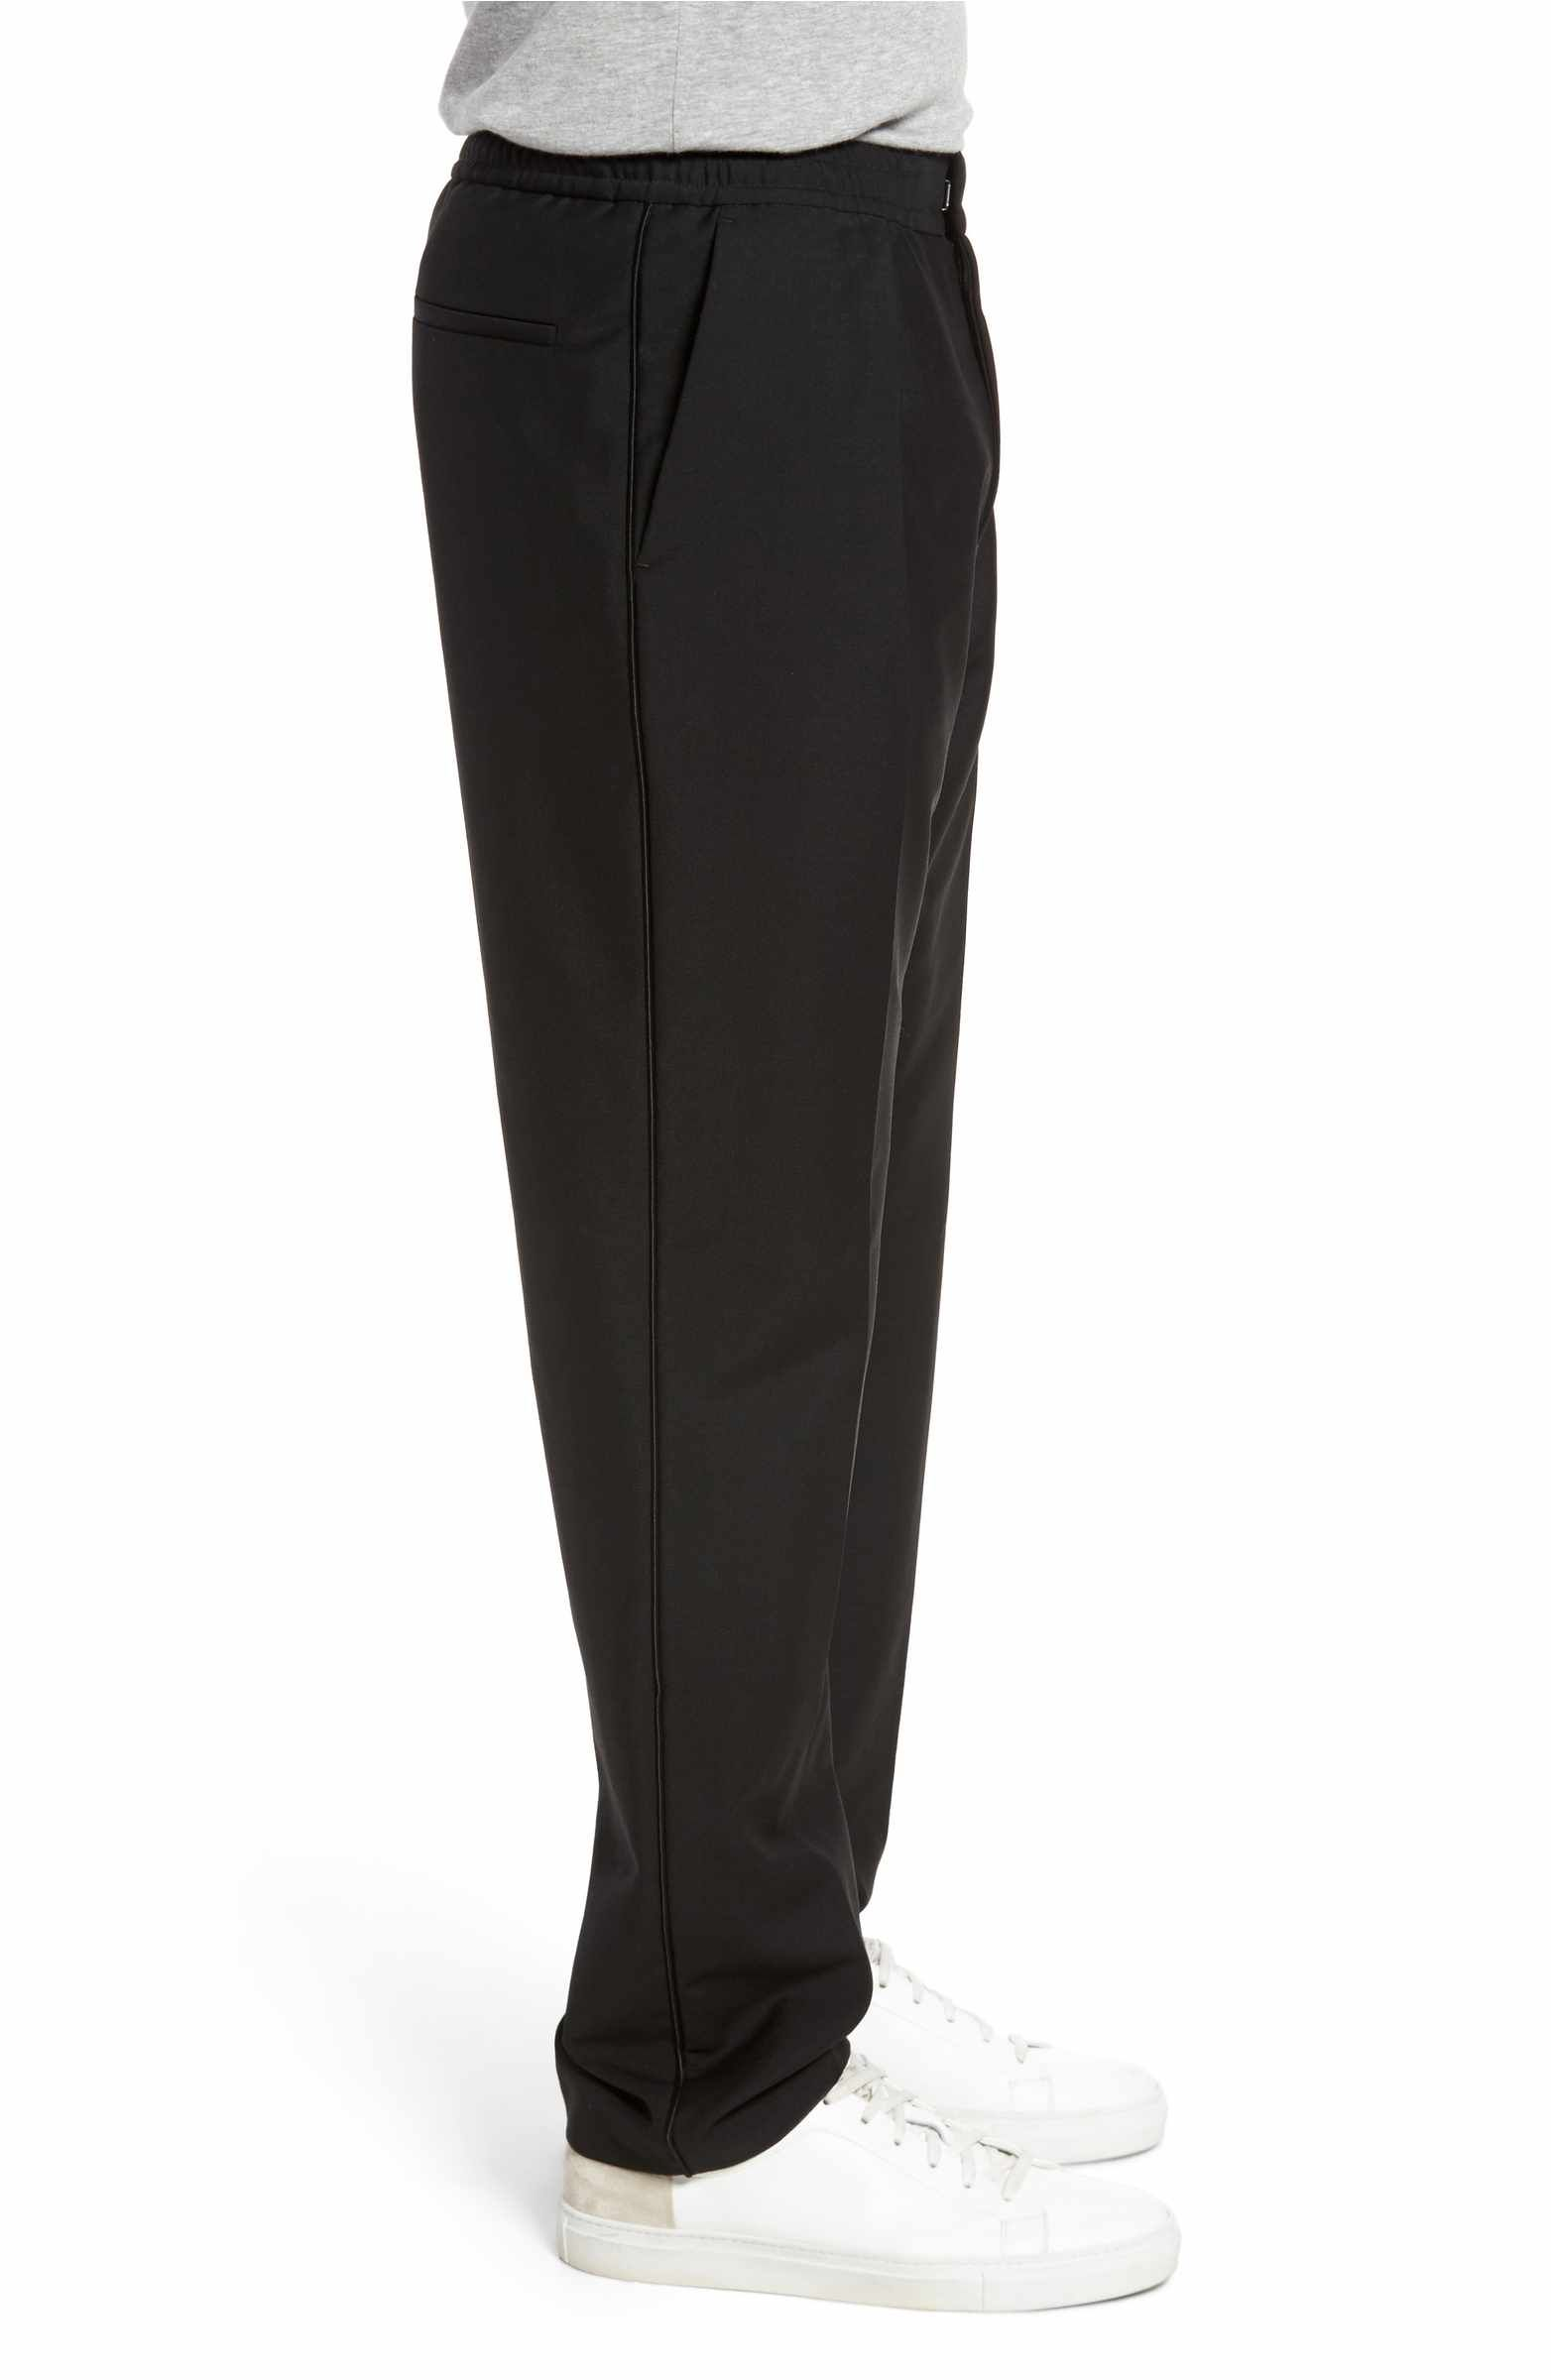 2794f325a6e33 Main Image - BOSS Payton Pleated Solid Wool & Mohair Jogger Trousers ...